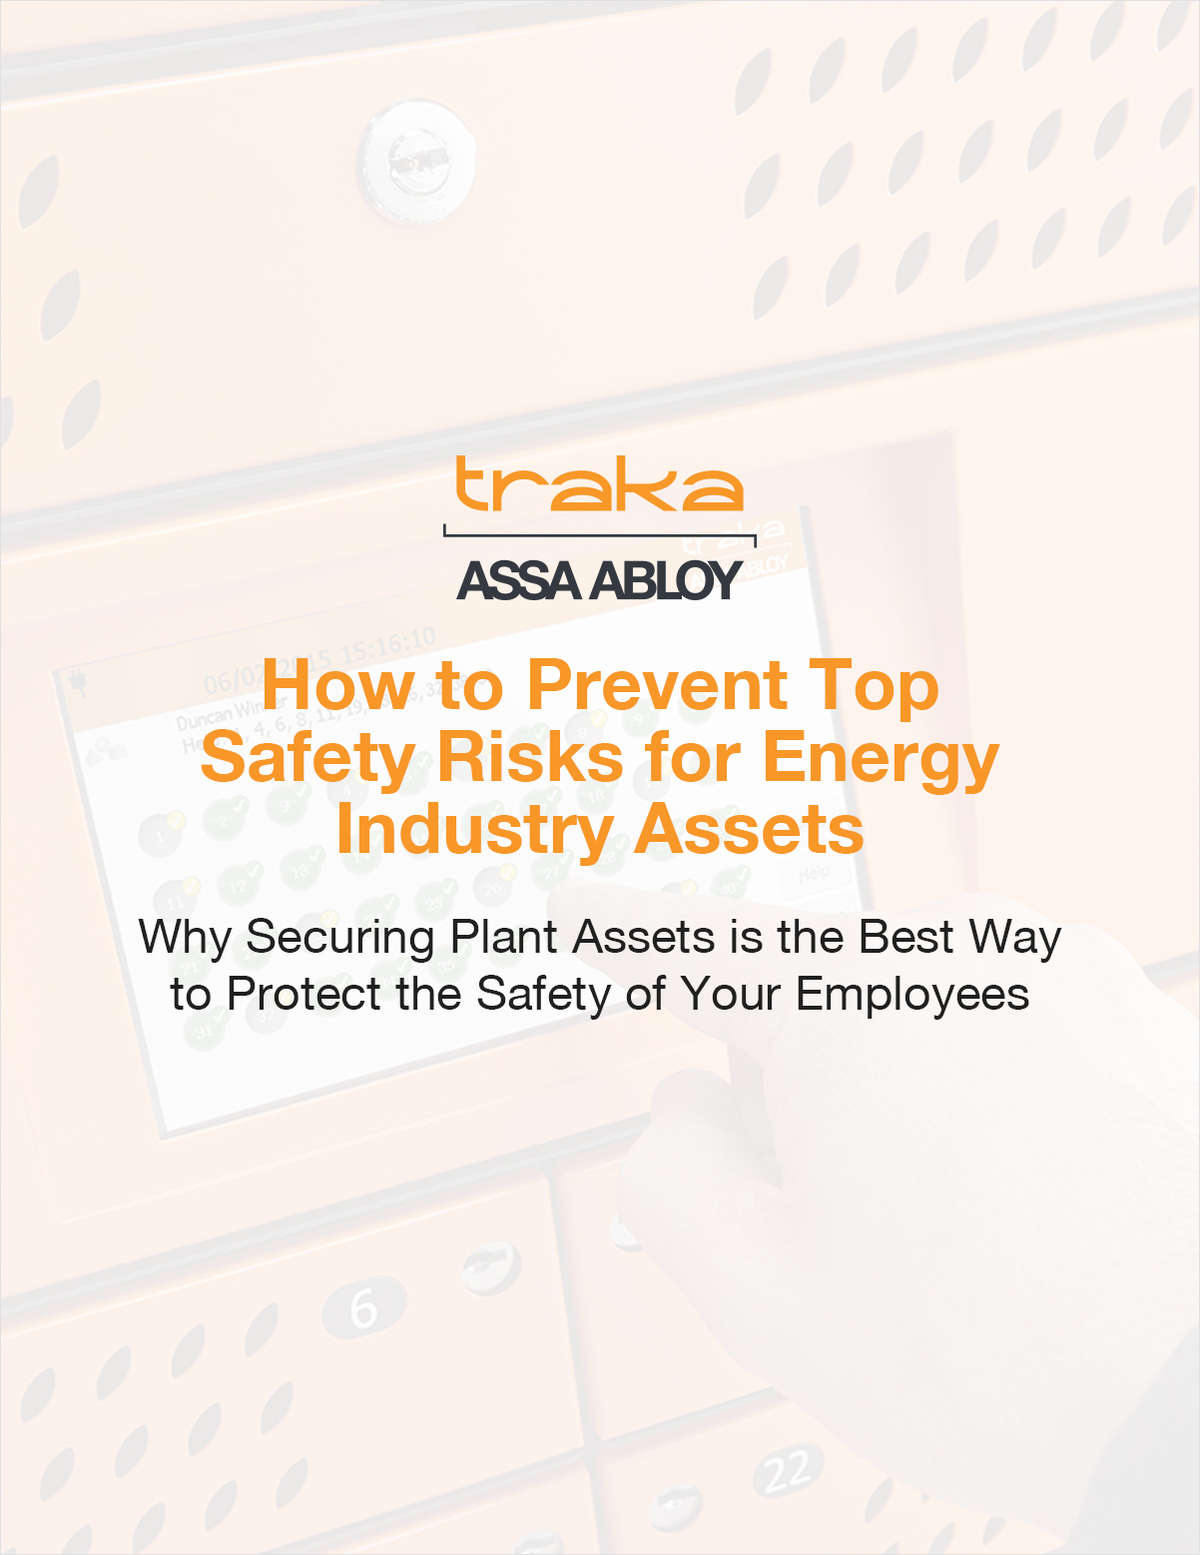 How to Prevent Top Safety Risks for Energy Industry Assets